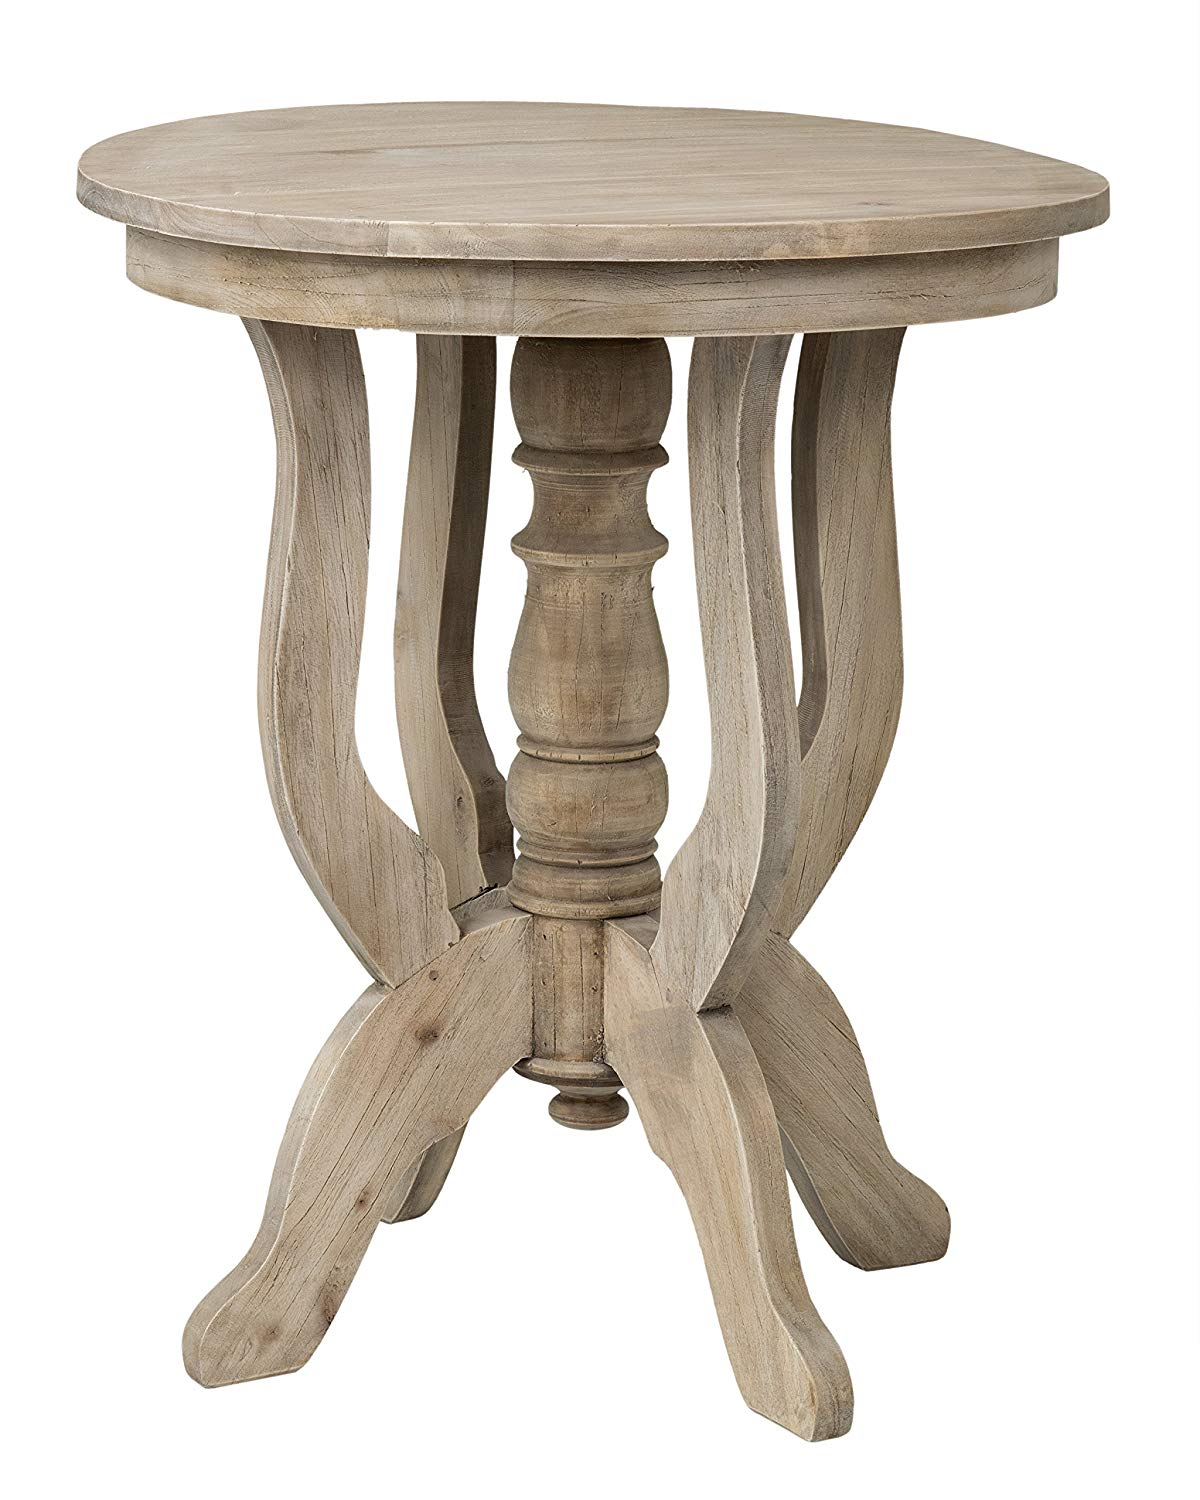 east main boyd brown rubber wood round accent table kitchen dining cherry bedroom furniture best coffee designs outdoor wall light fixtures credenza leather ballard pillows ethan